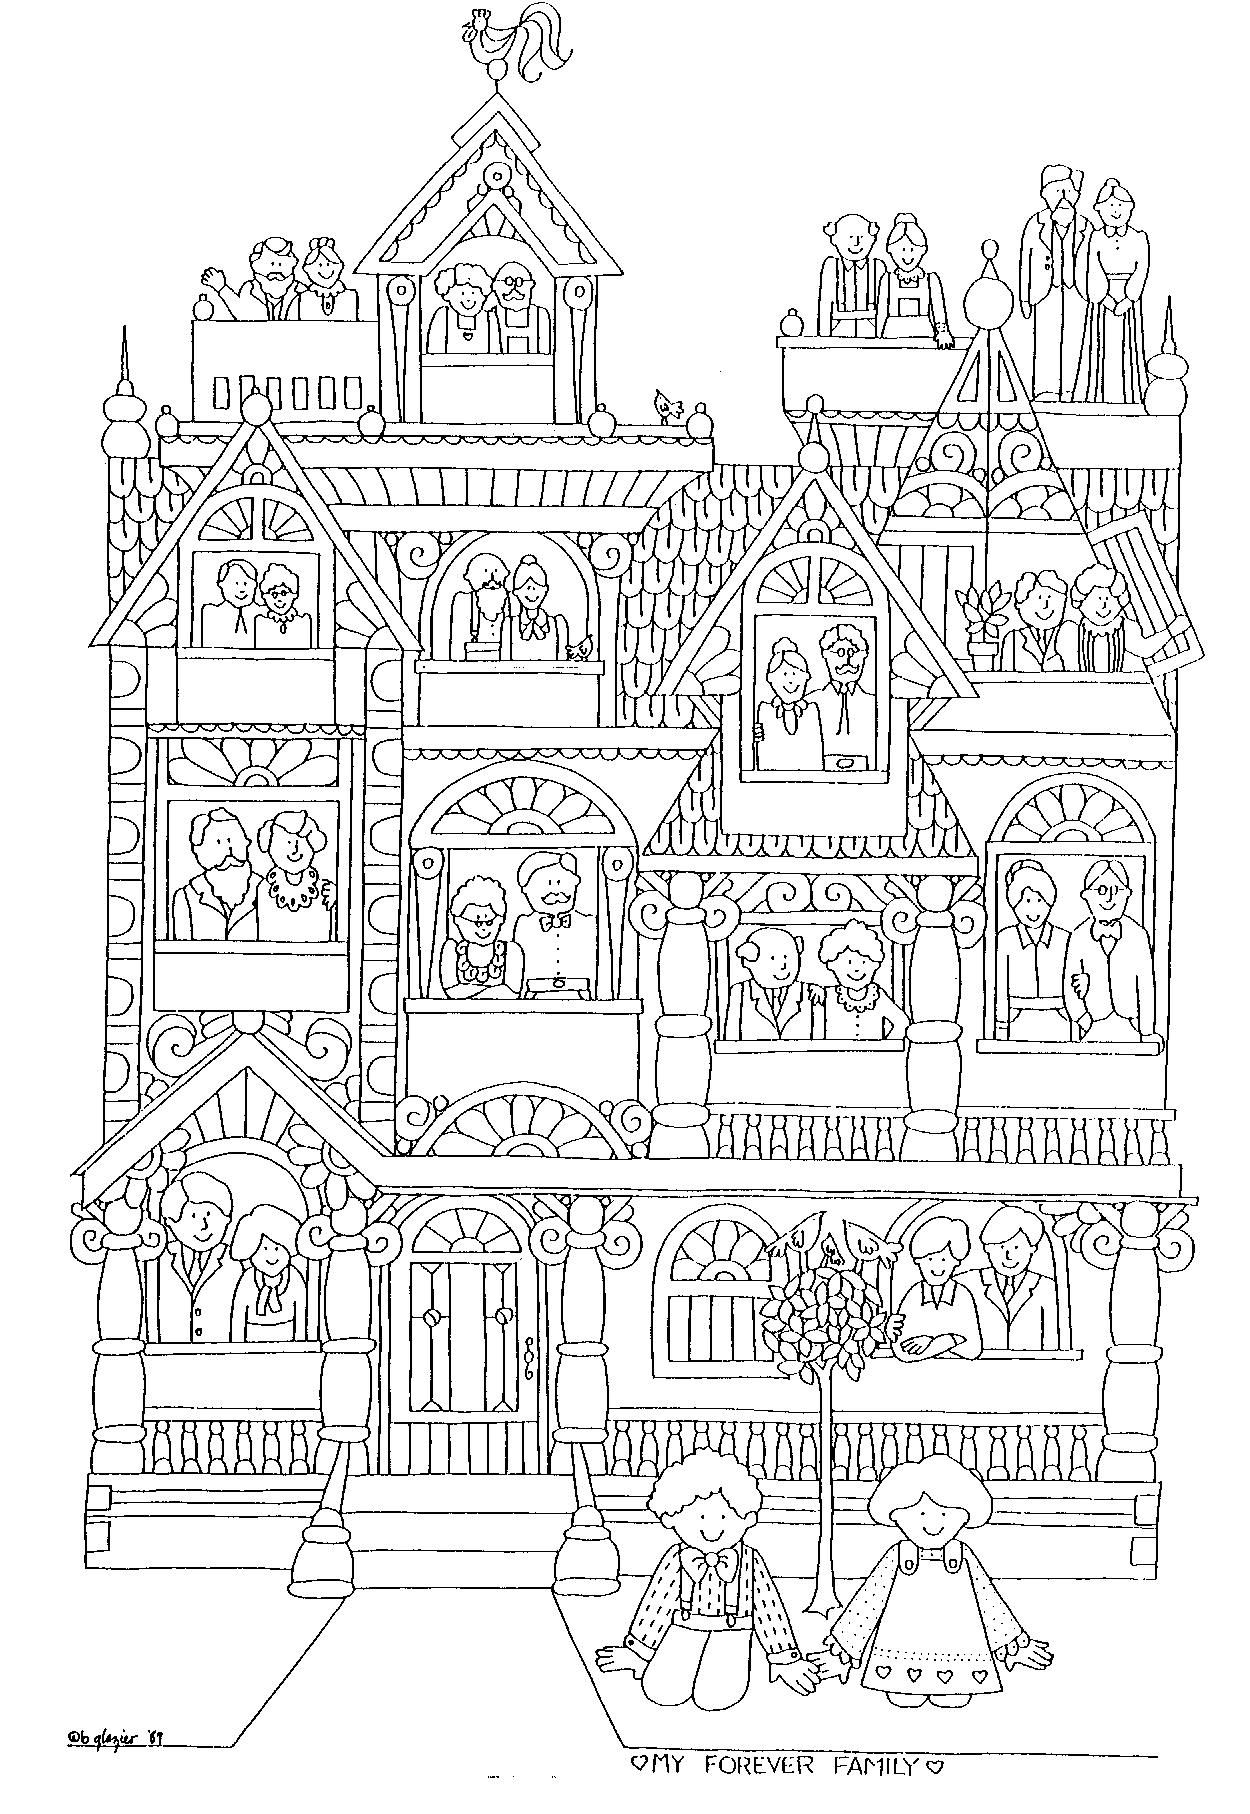 Family Tree Printable And Coloring Page I Would Cut Out People In Windows Leave Open For Kiddos To Draw Their Members Pets